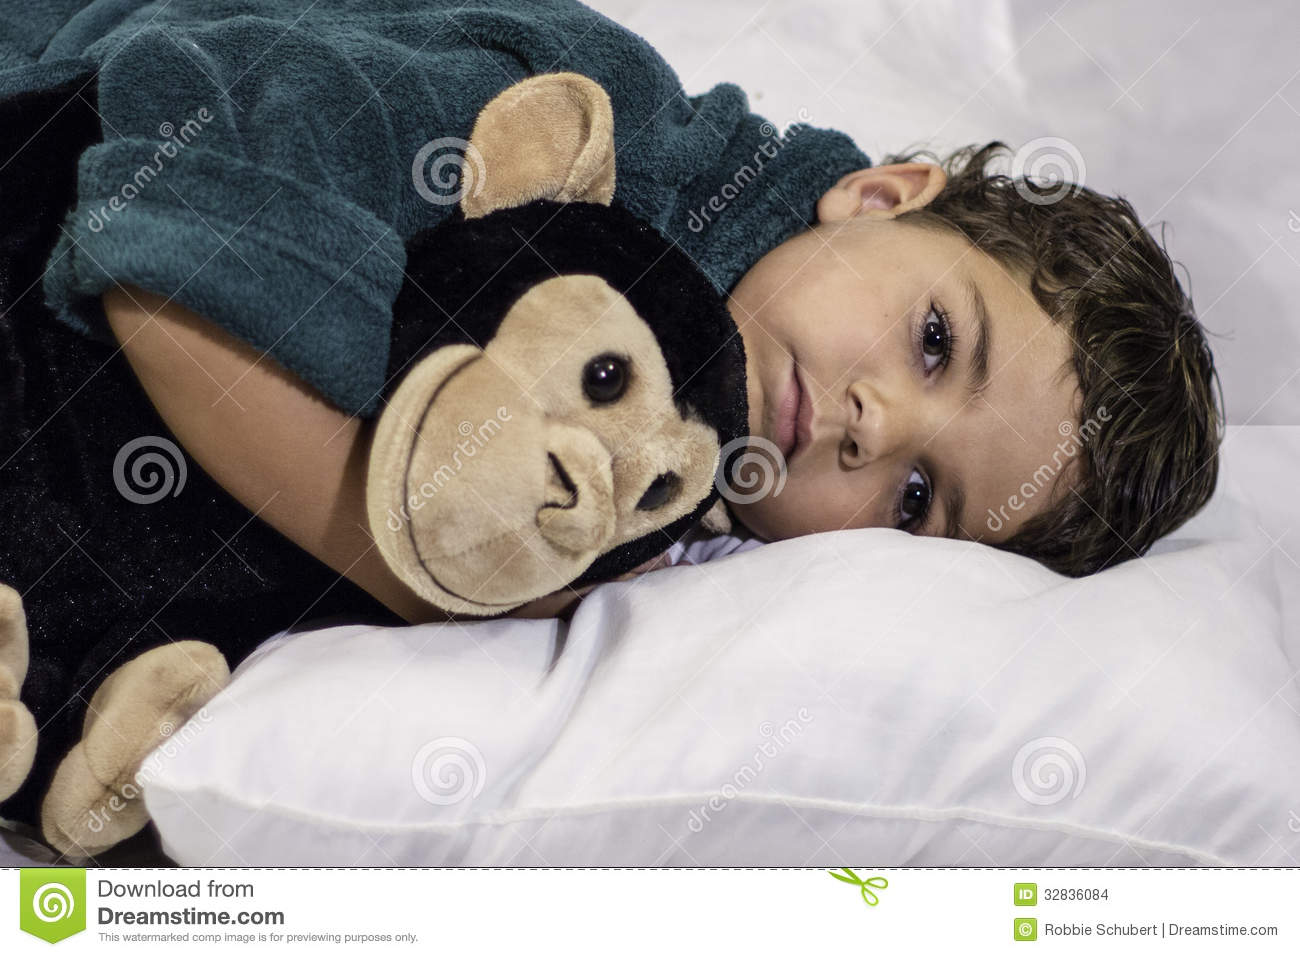 child laying in bed stock photo. image of people, caucasian - 32836084